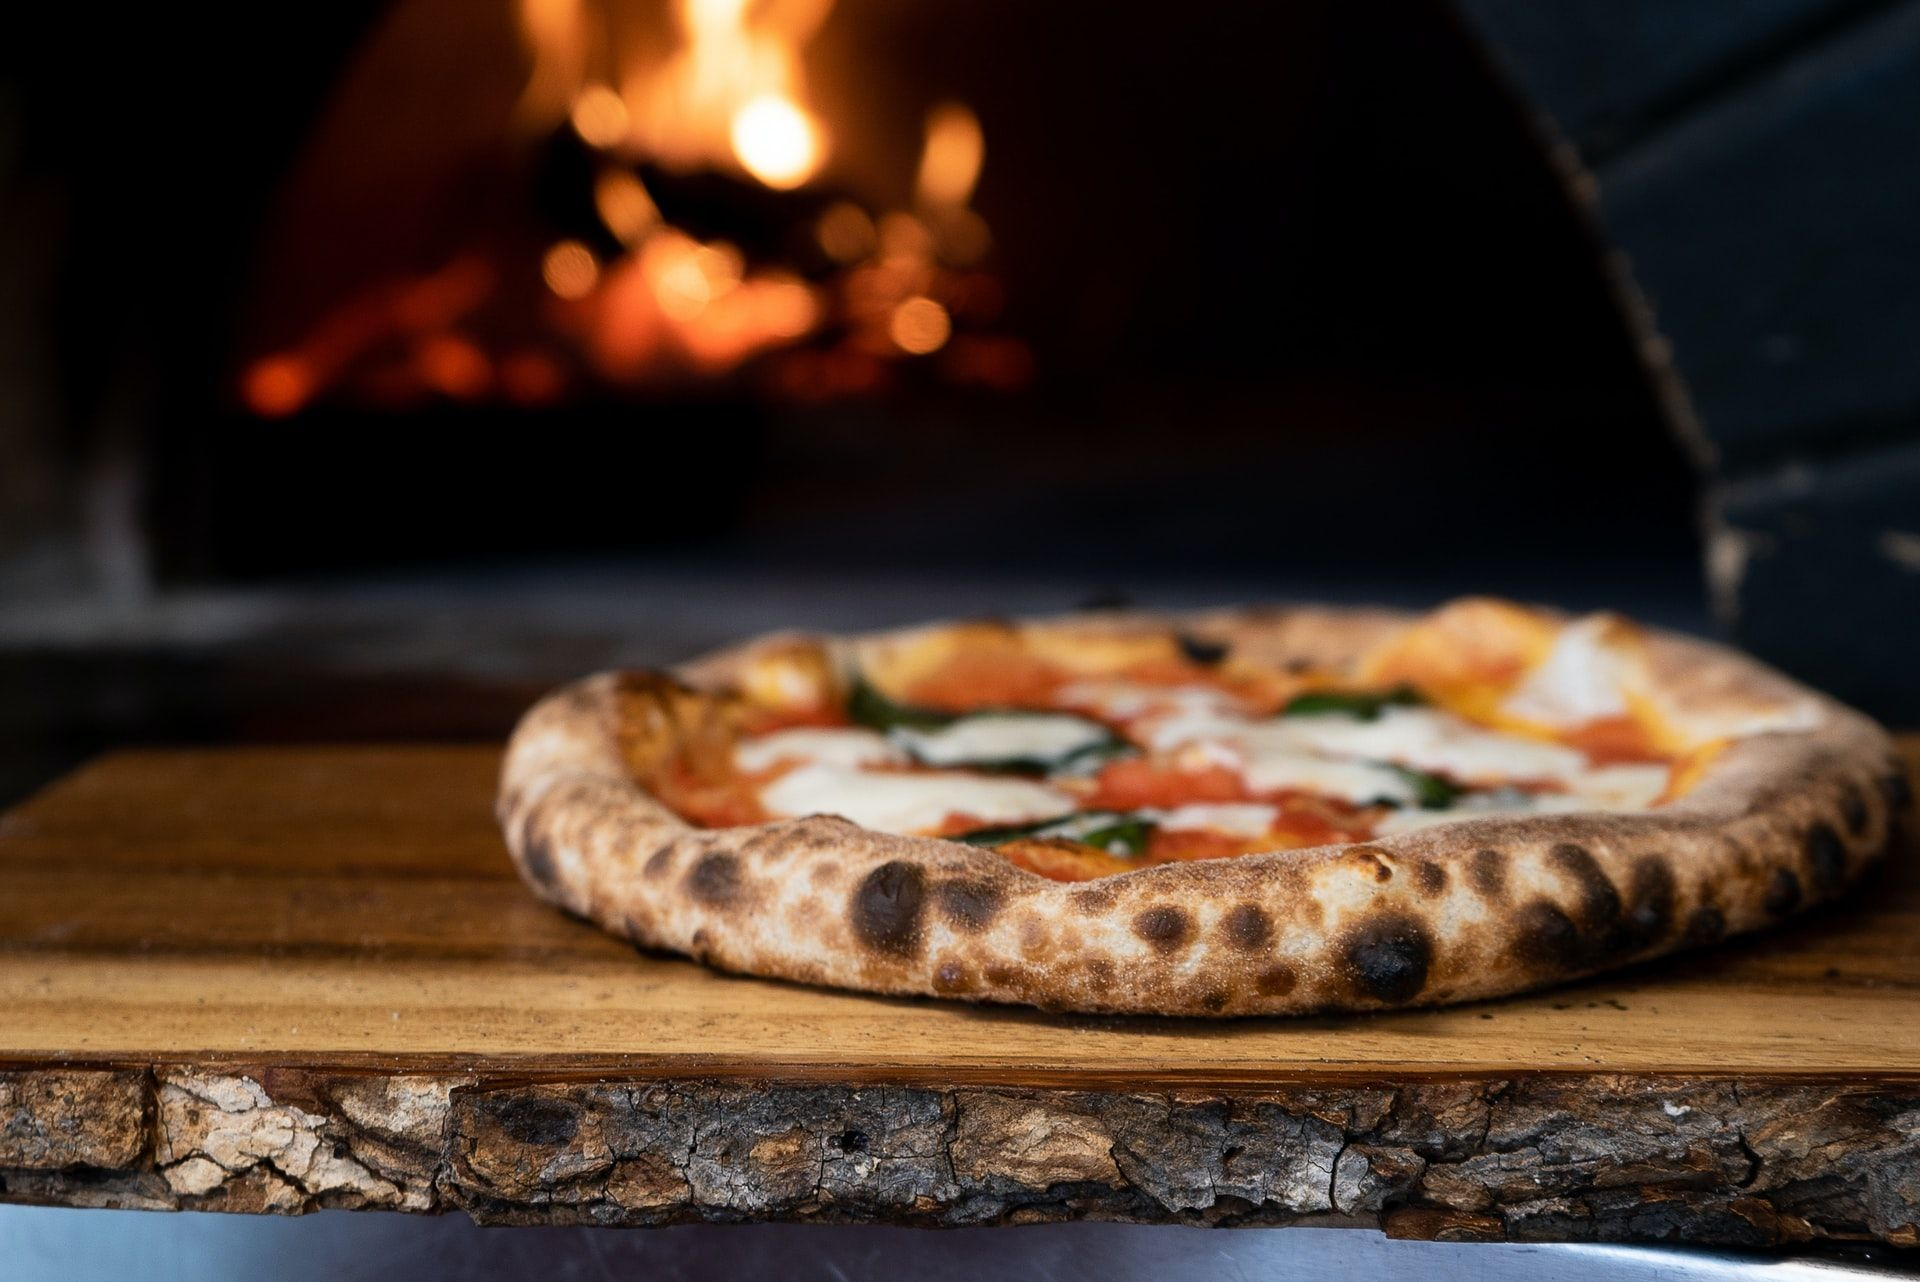 Where to order the best pizzas in makati. Photo by Nik Owens for Unsplash